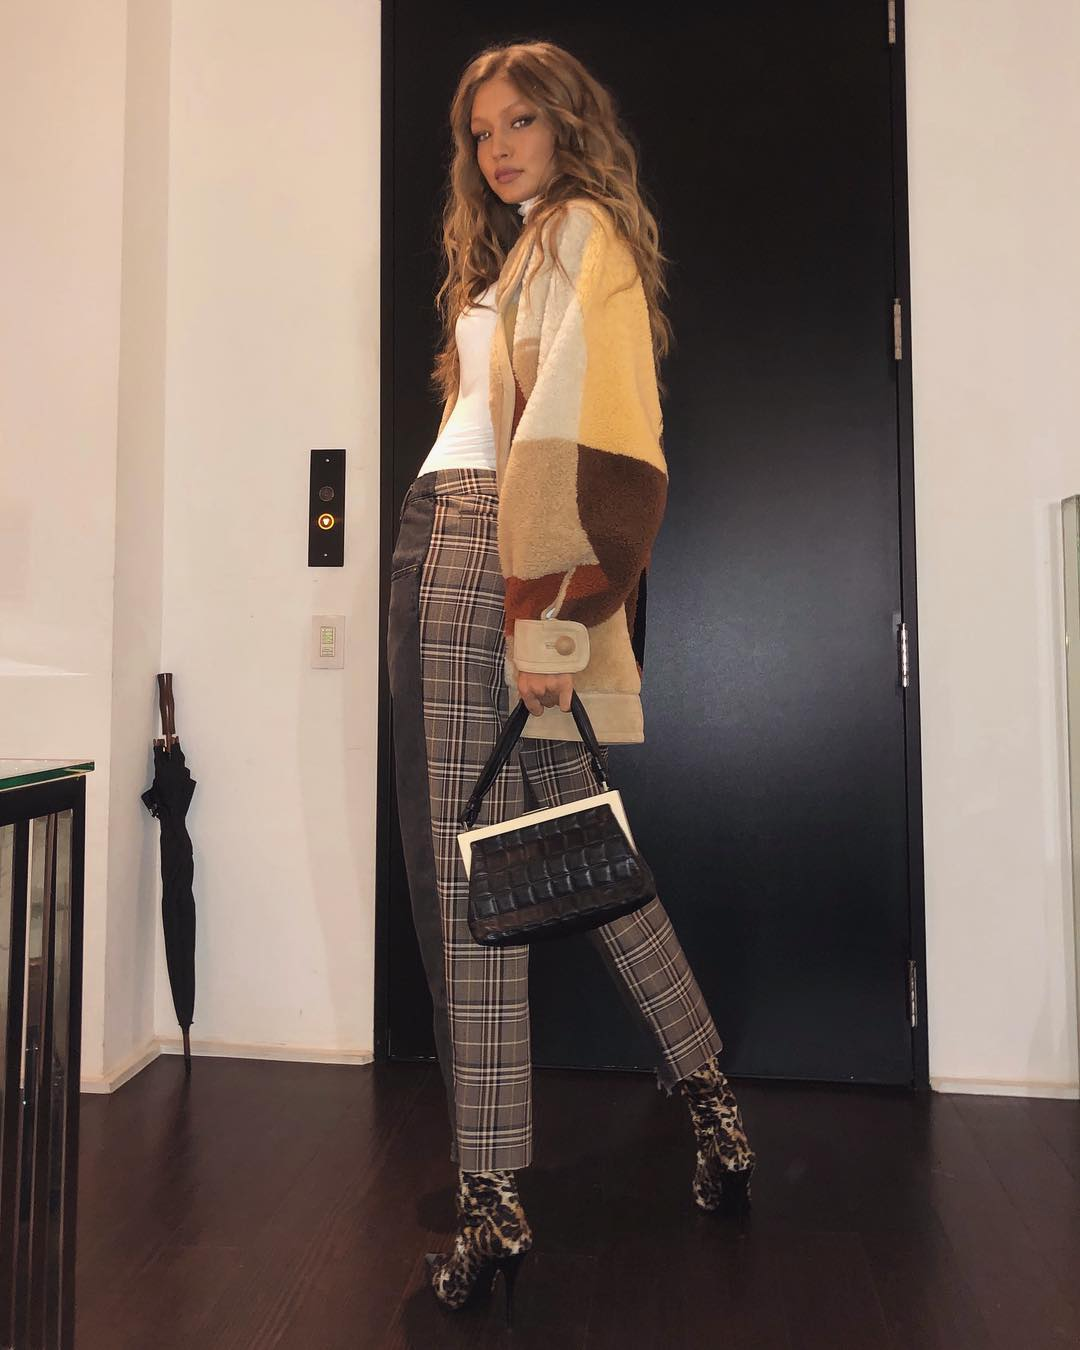 Gigi Hadid Wearing Teddy Bear Coat, White Turtleneck, Plaid Pants And Leopard Boots 2019